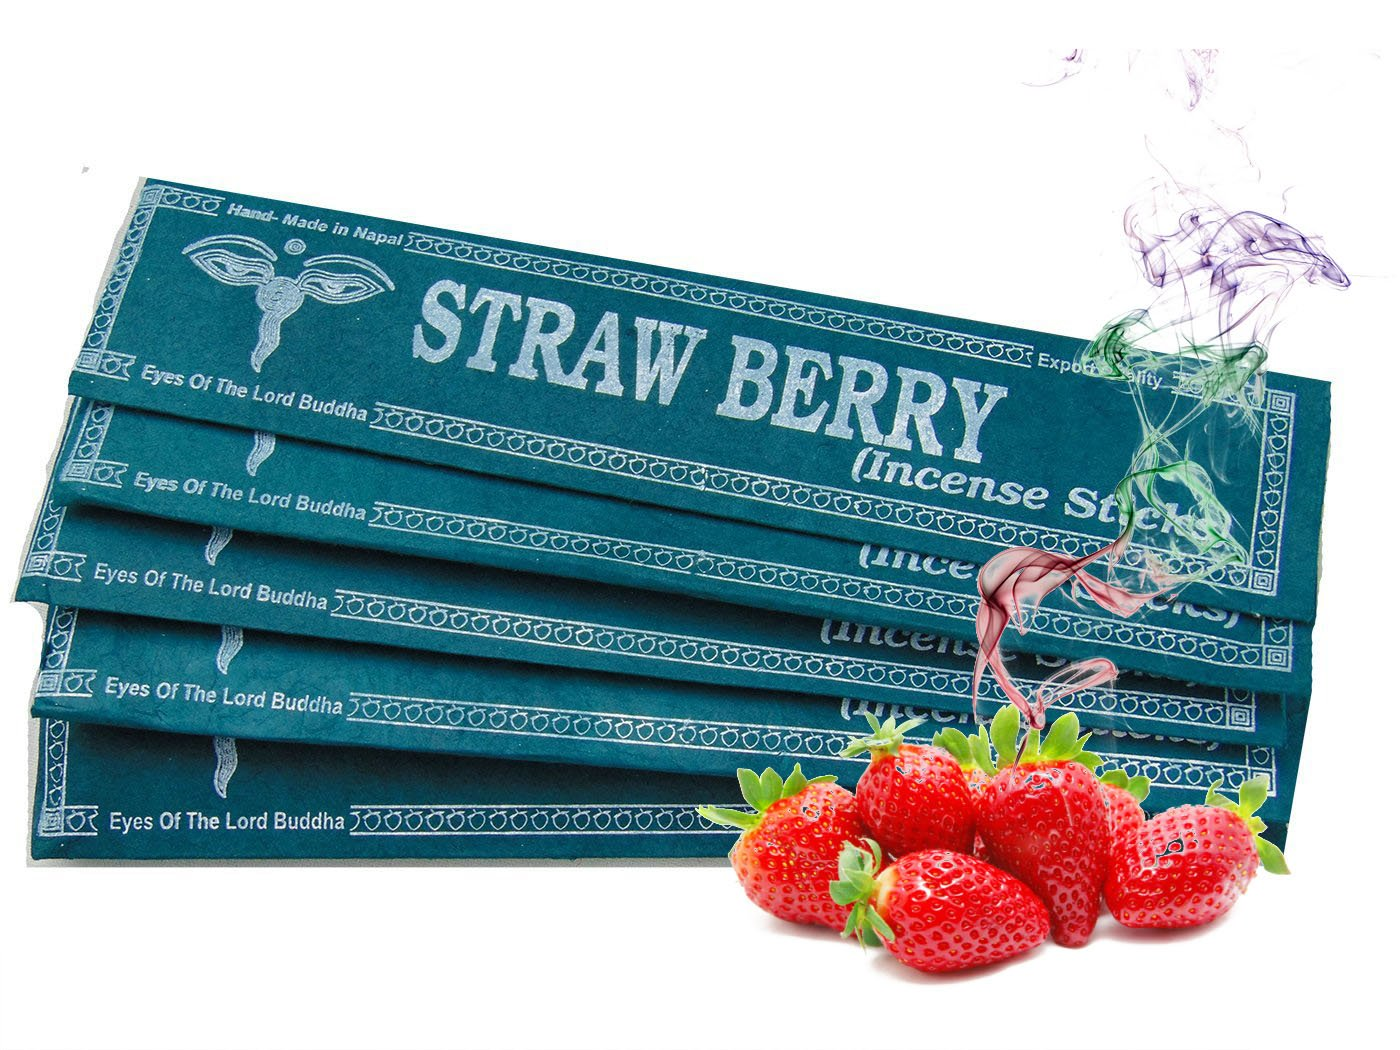 Dancing Buddha Strawberry Handmade Incense in lokta paper Pack of 5 Includes Free Meditation Guide юбка strawberry witch lolita sk